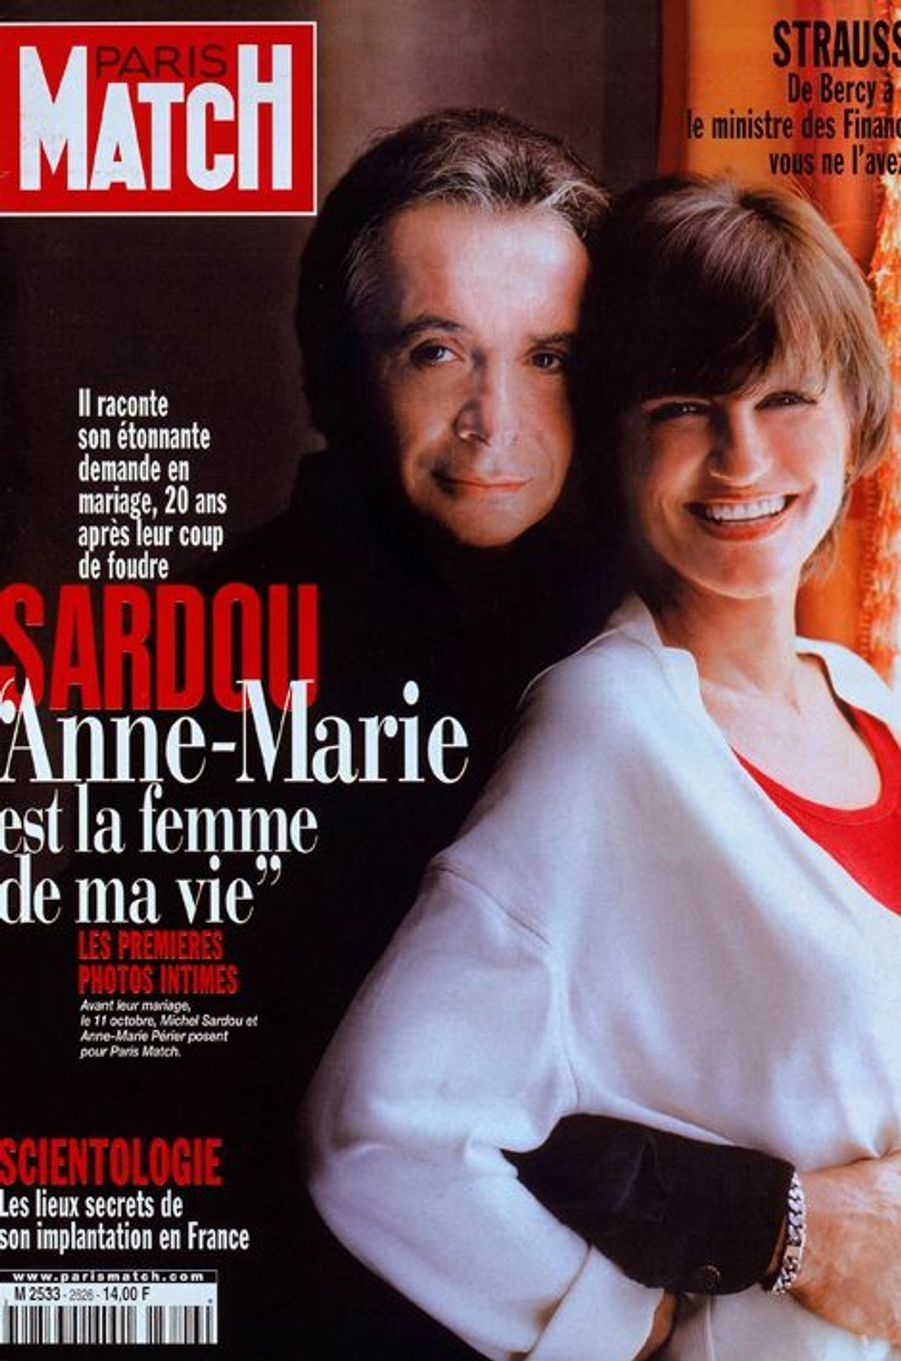 Couverture de Paris Match, 23 septembre 1999